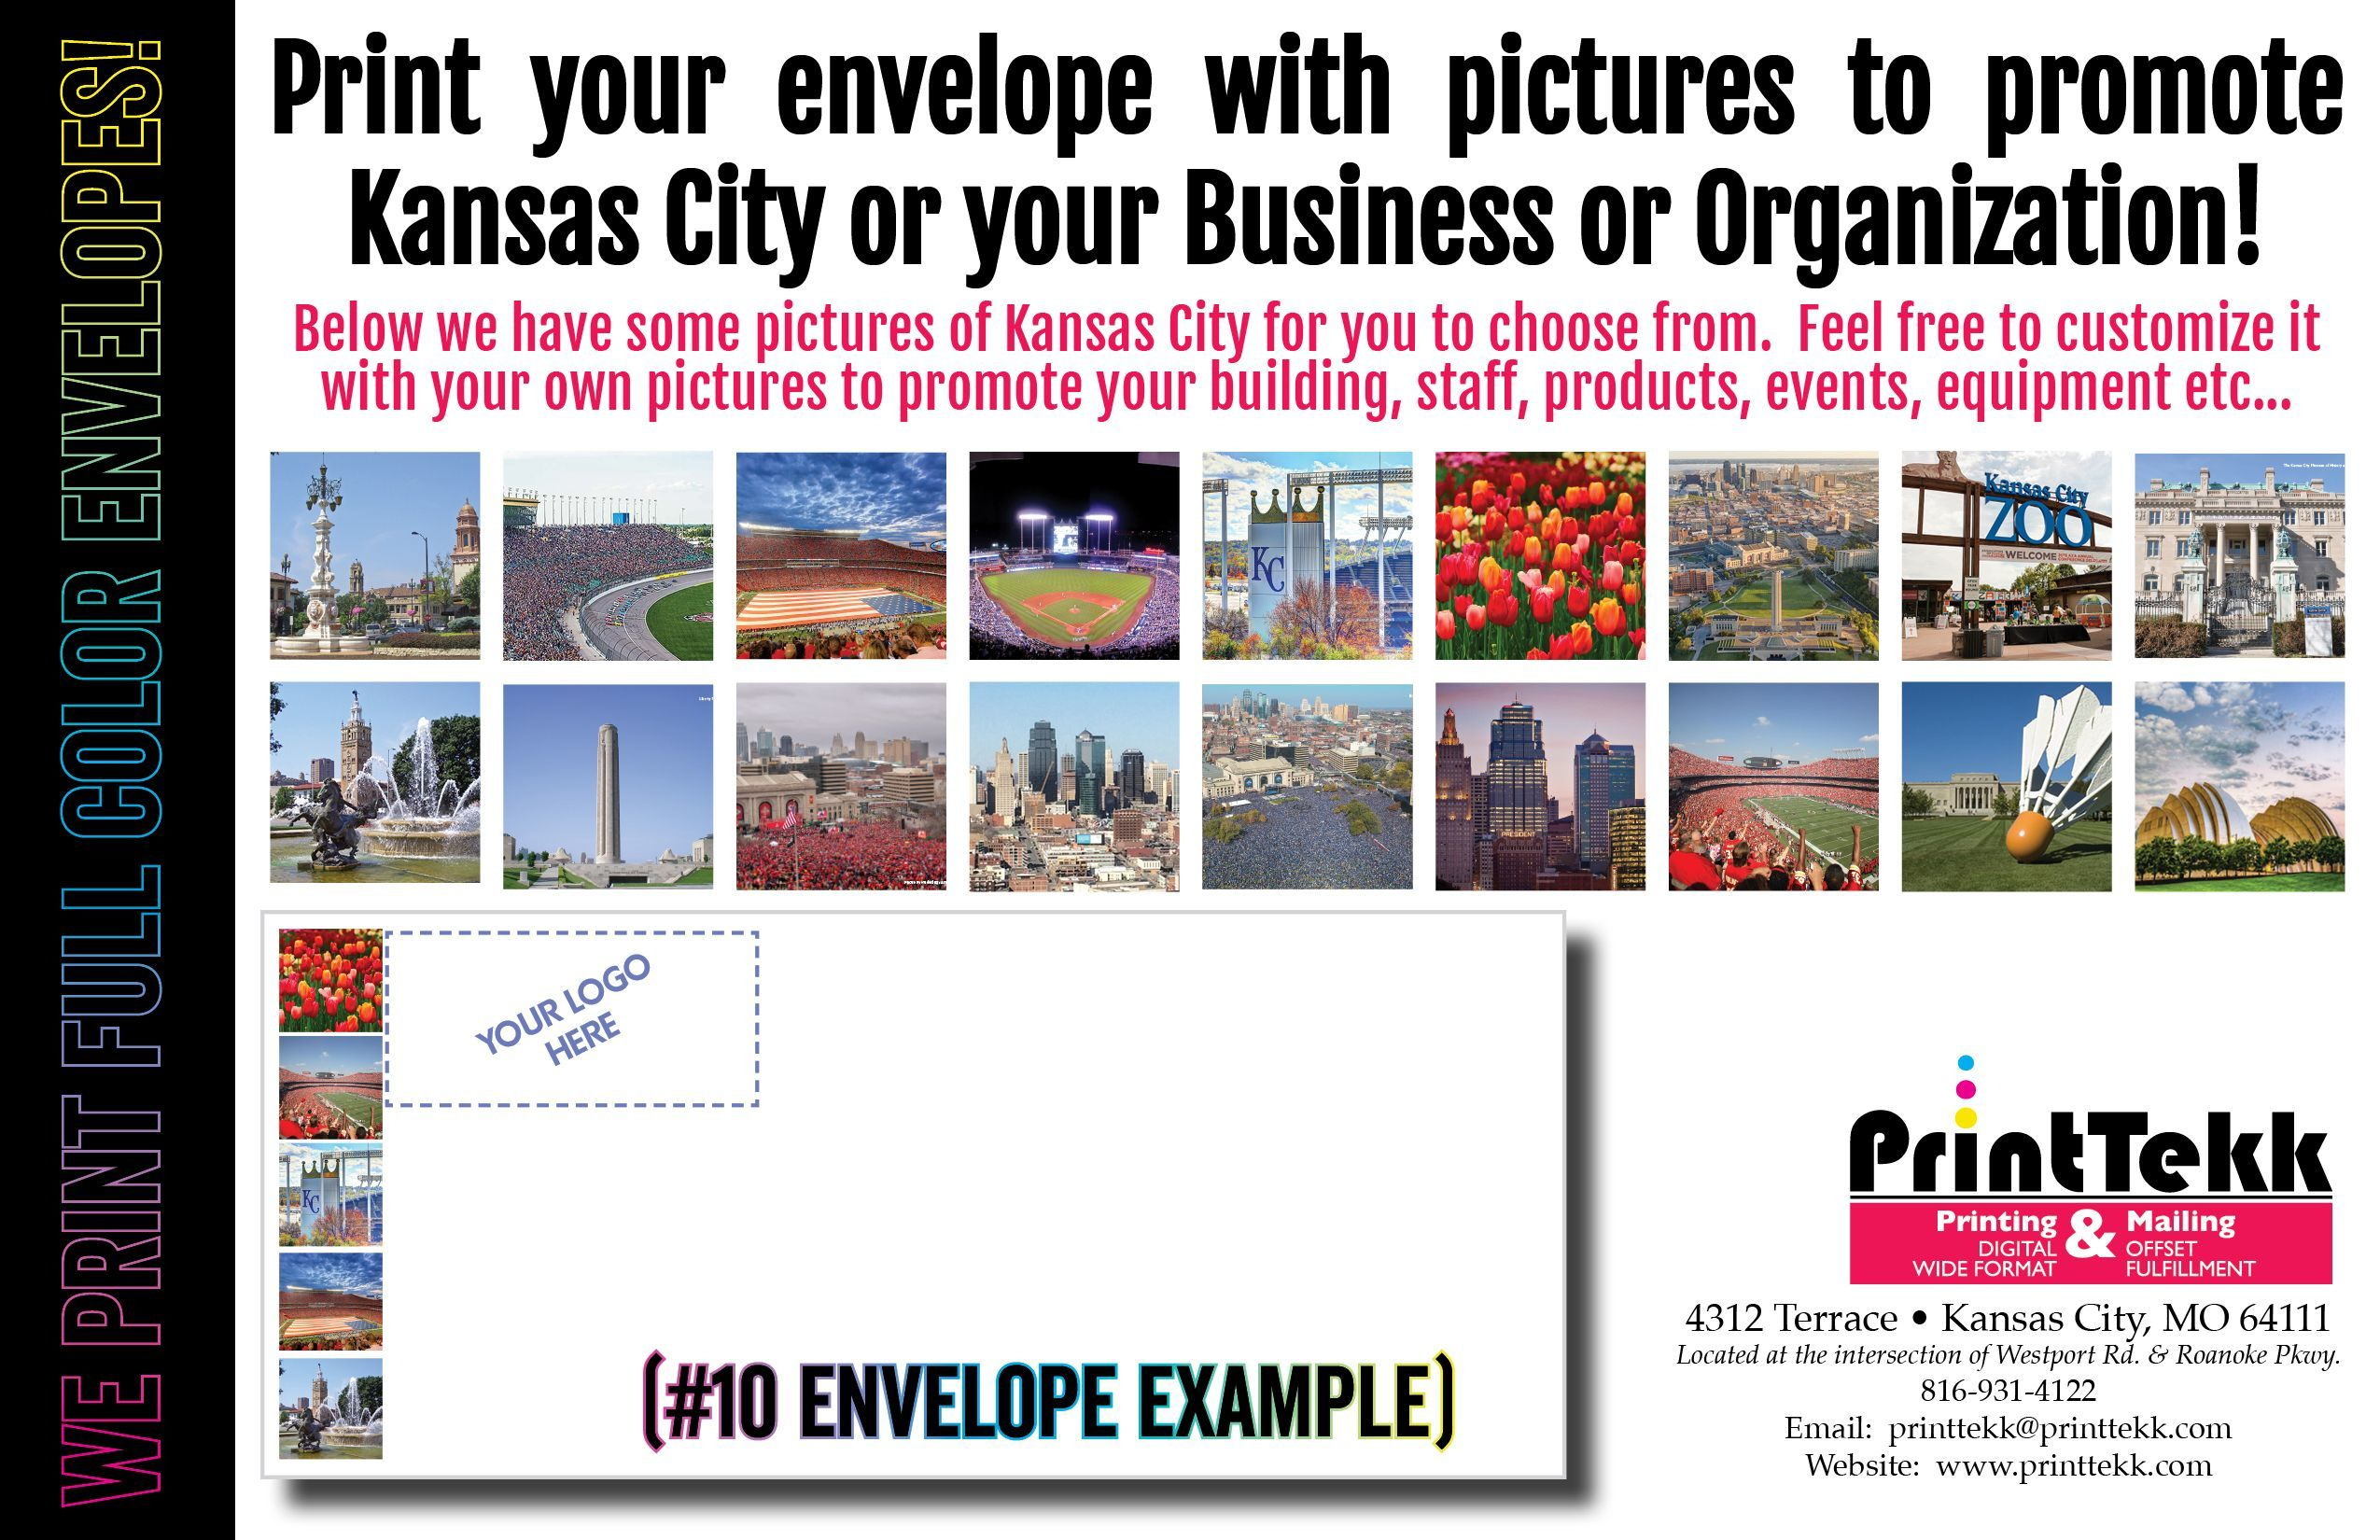 Print your envelope with pictures